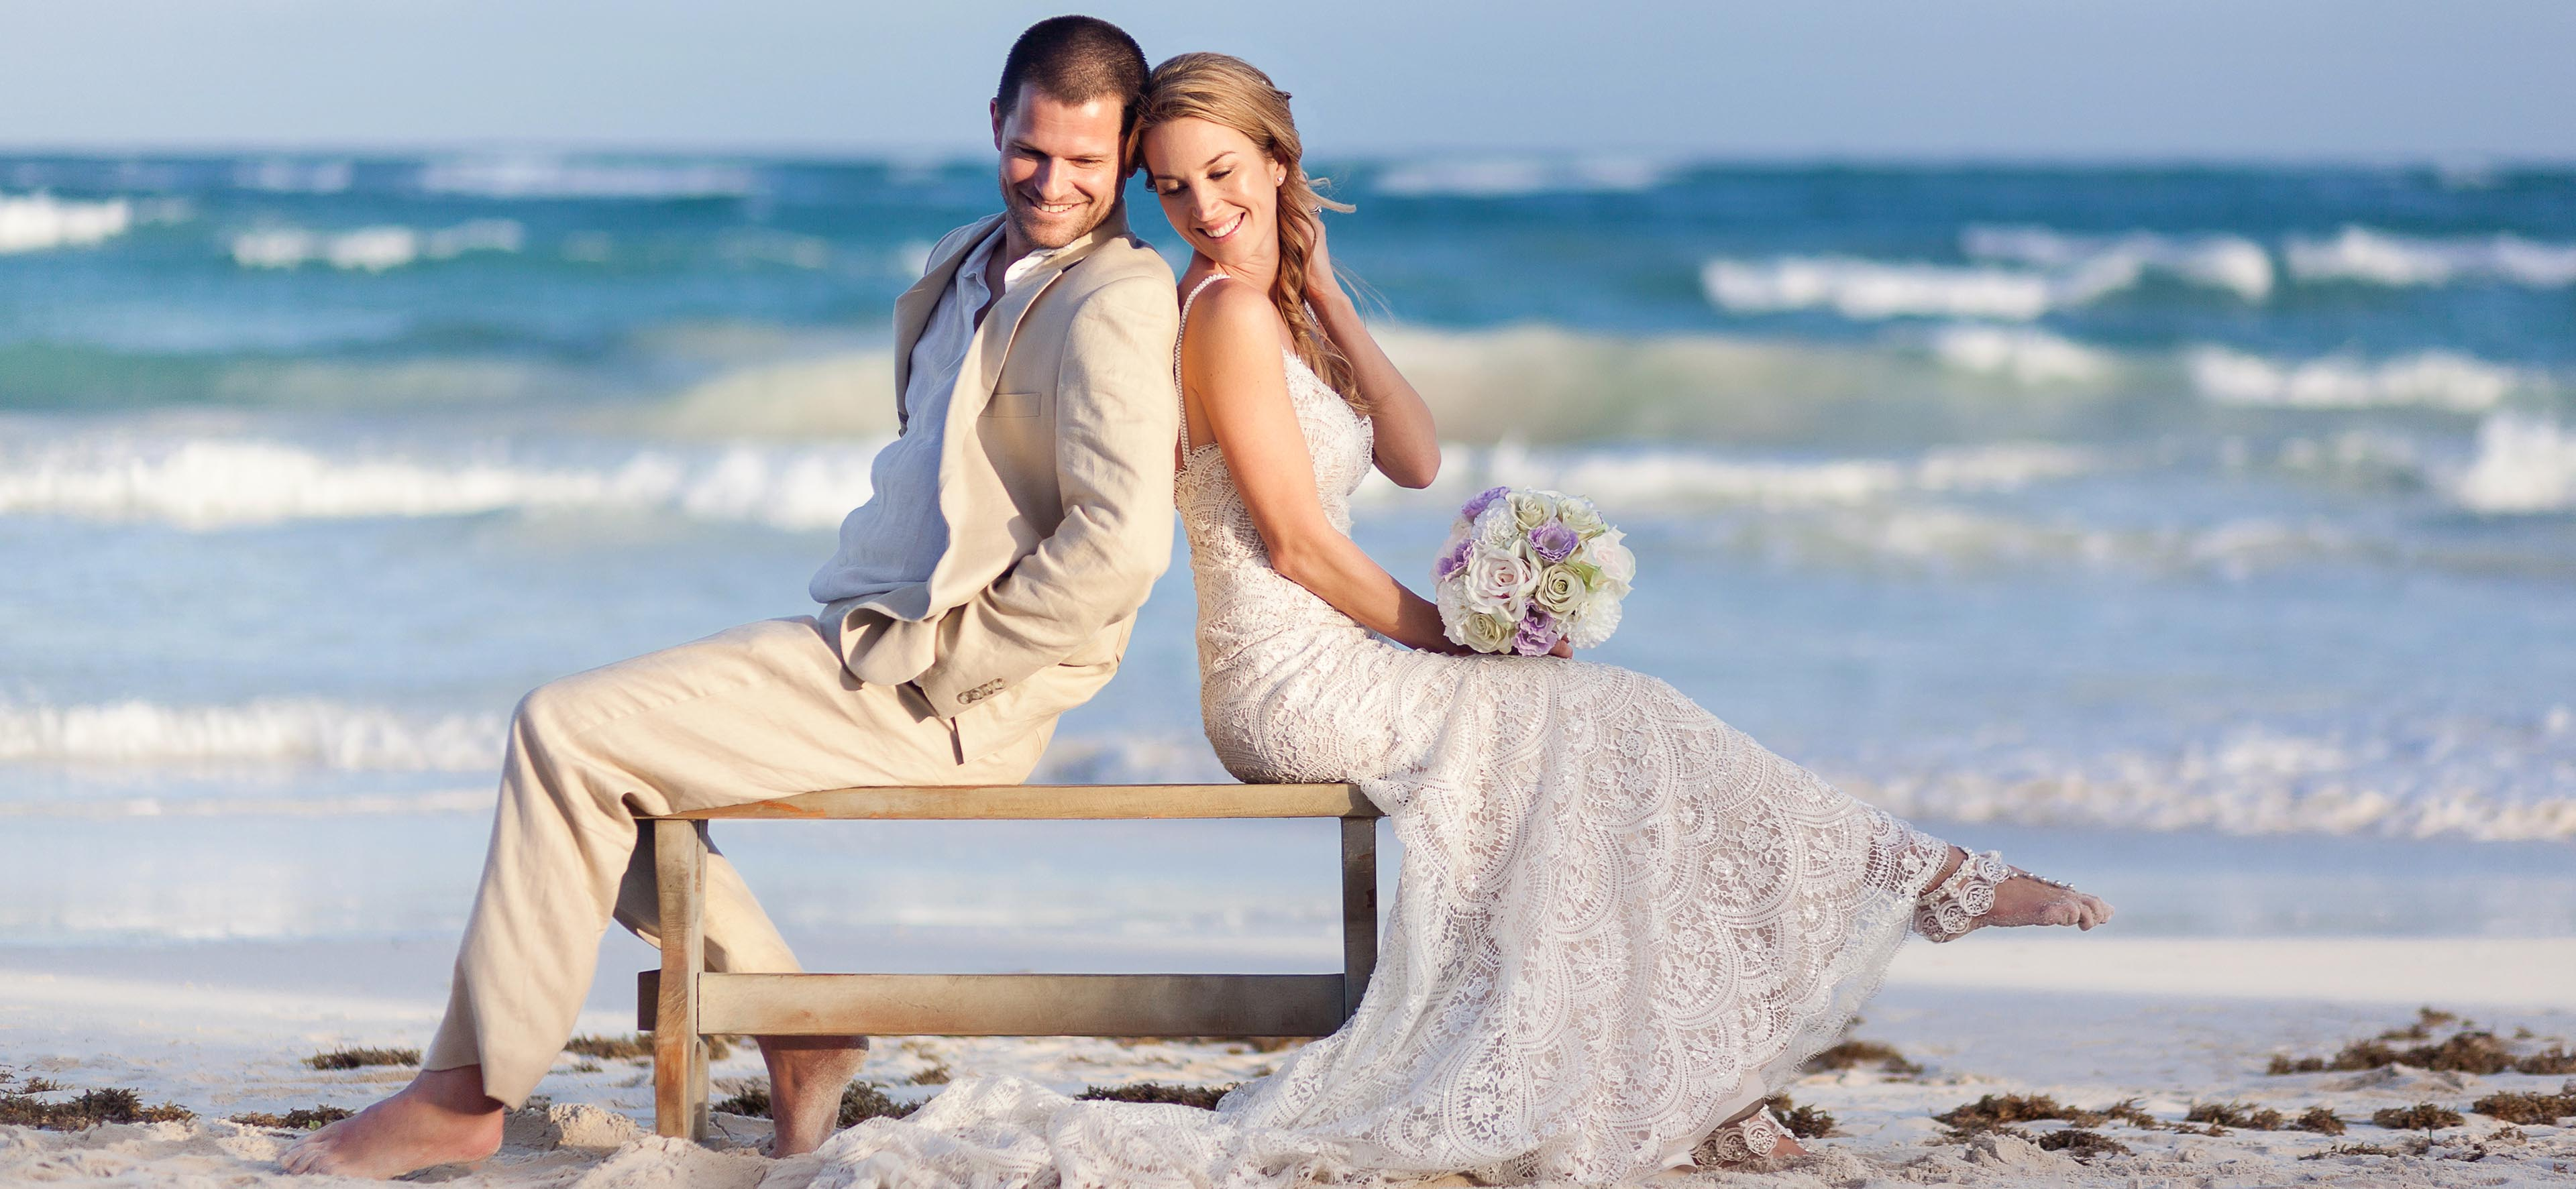 Bride and Groom sitting on Bench on beach in Tulum.